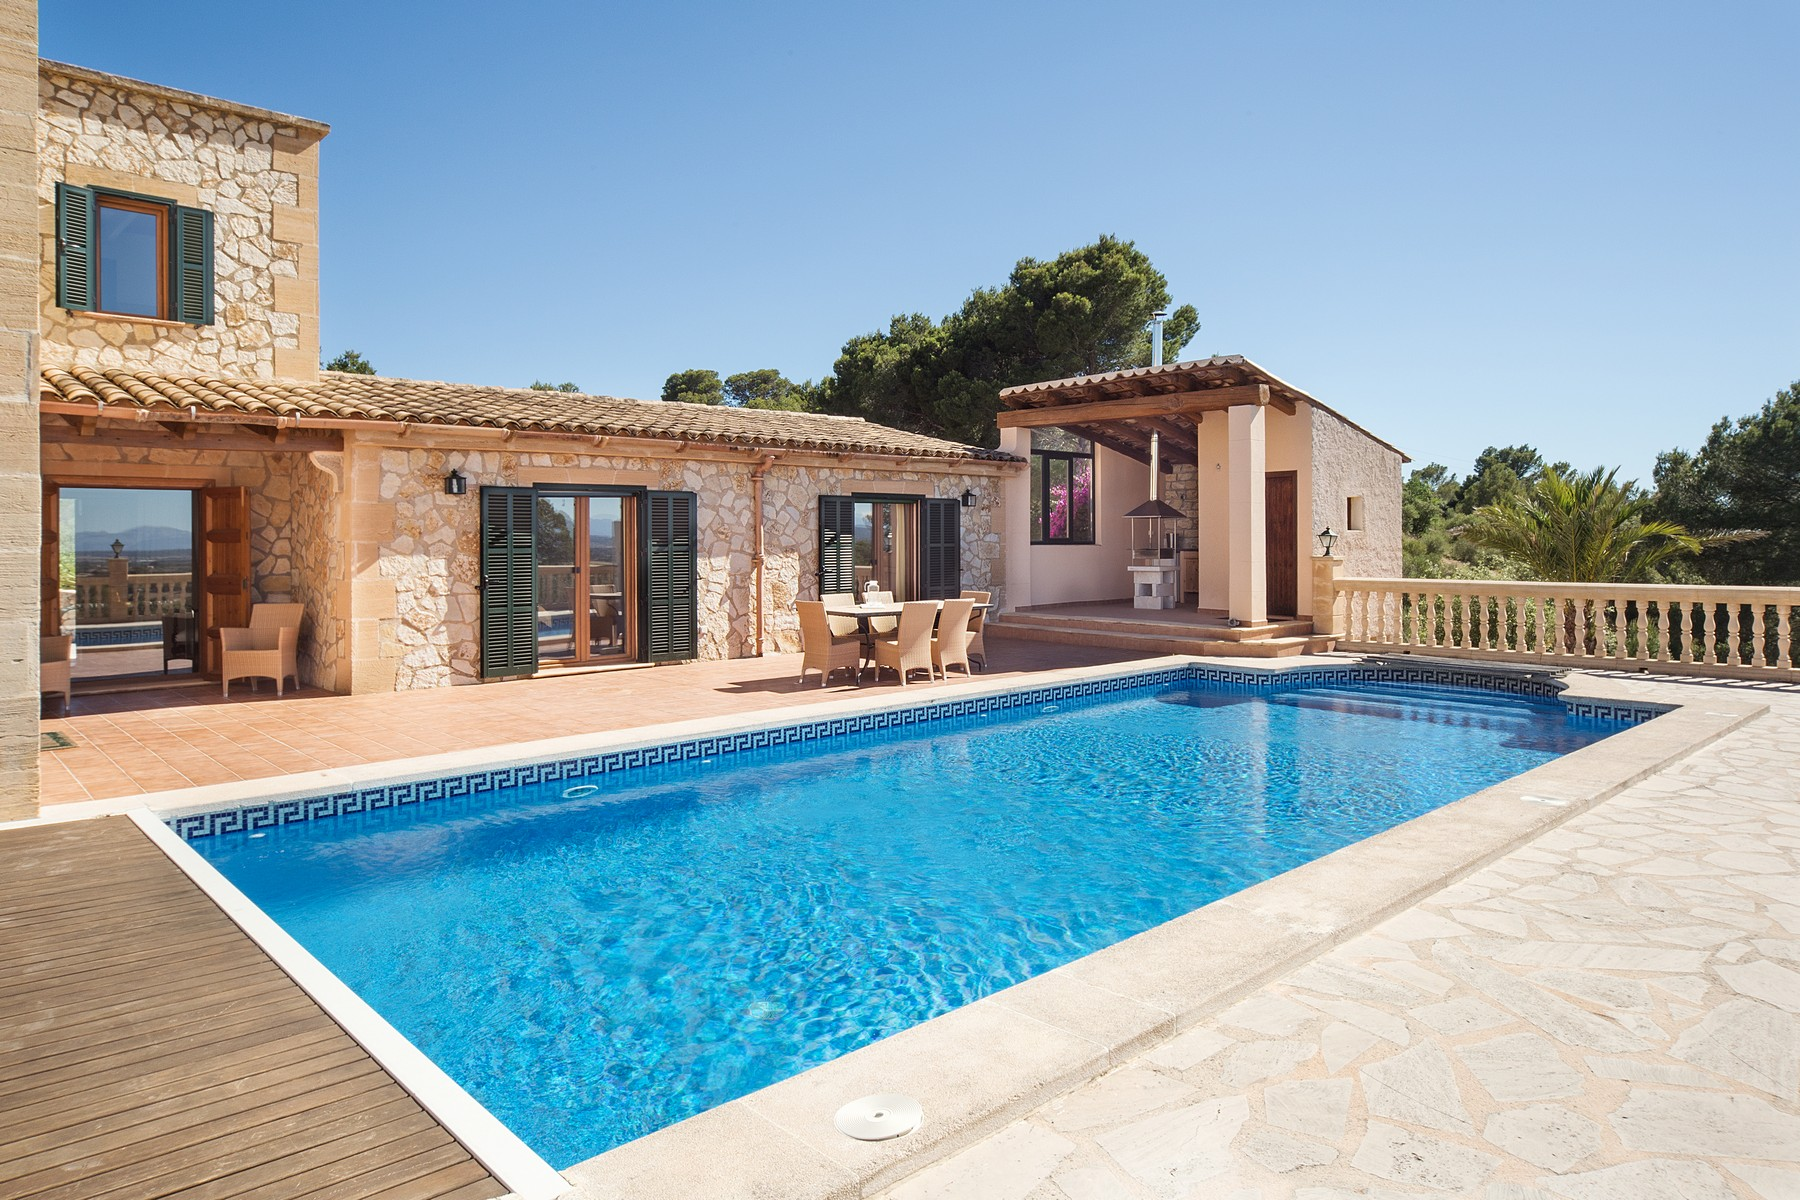 Single Family Home for Sale at Delightful country estate with panoramic views Felanitx, Balearic Islands Spain